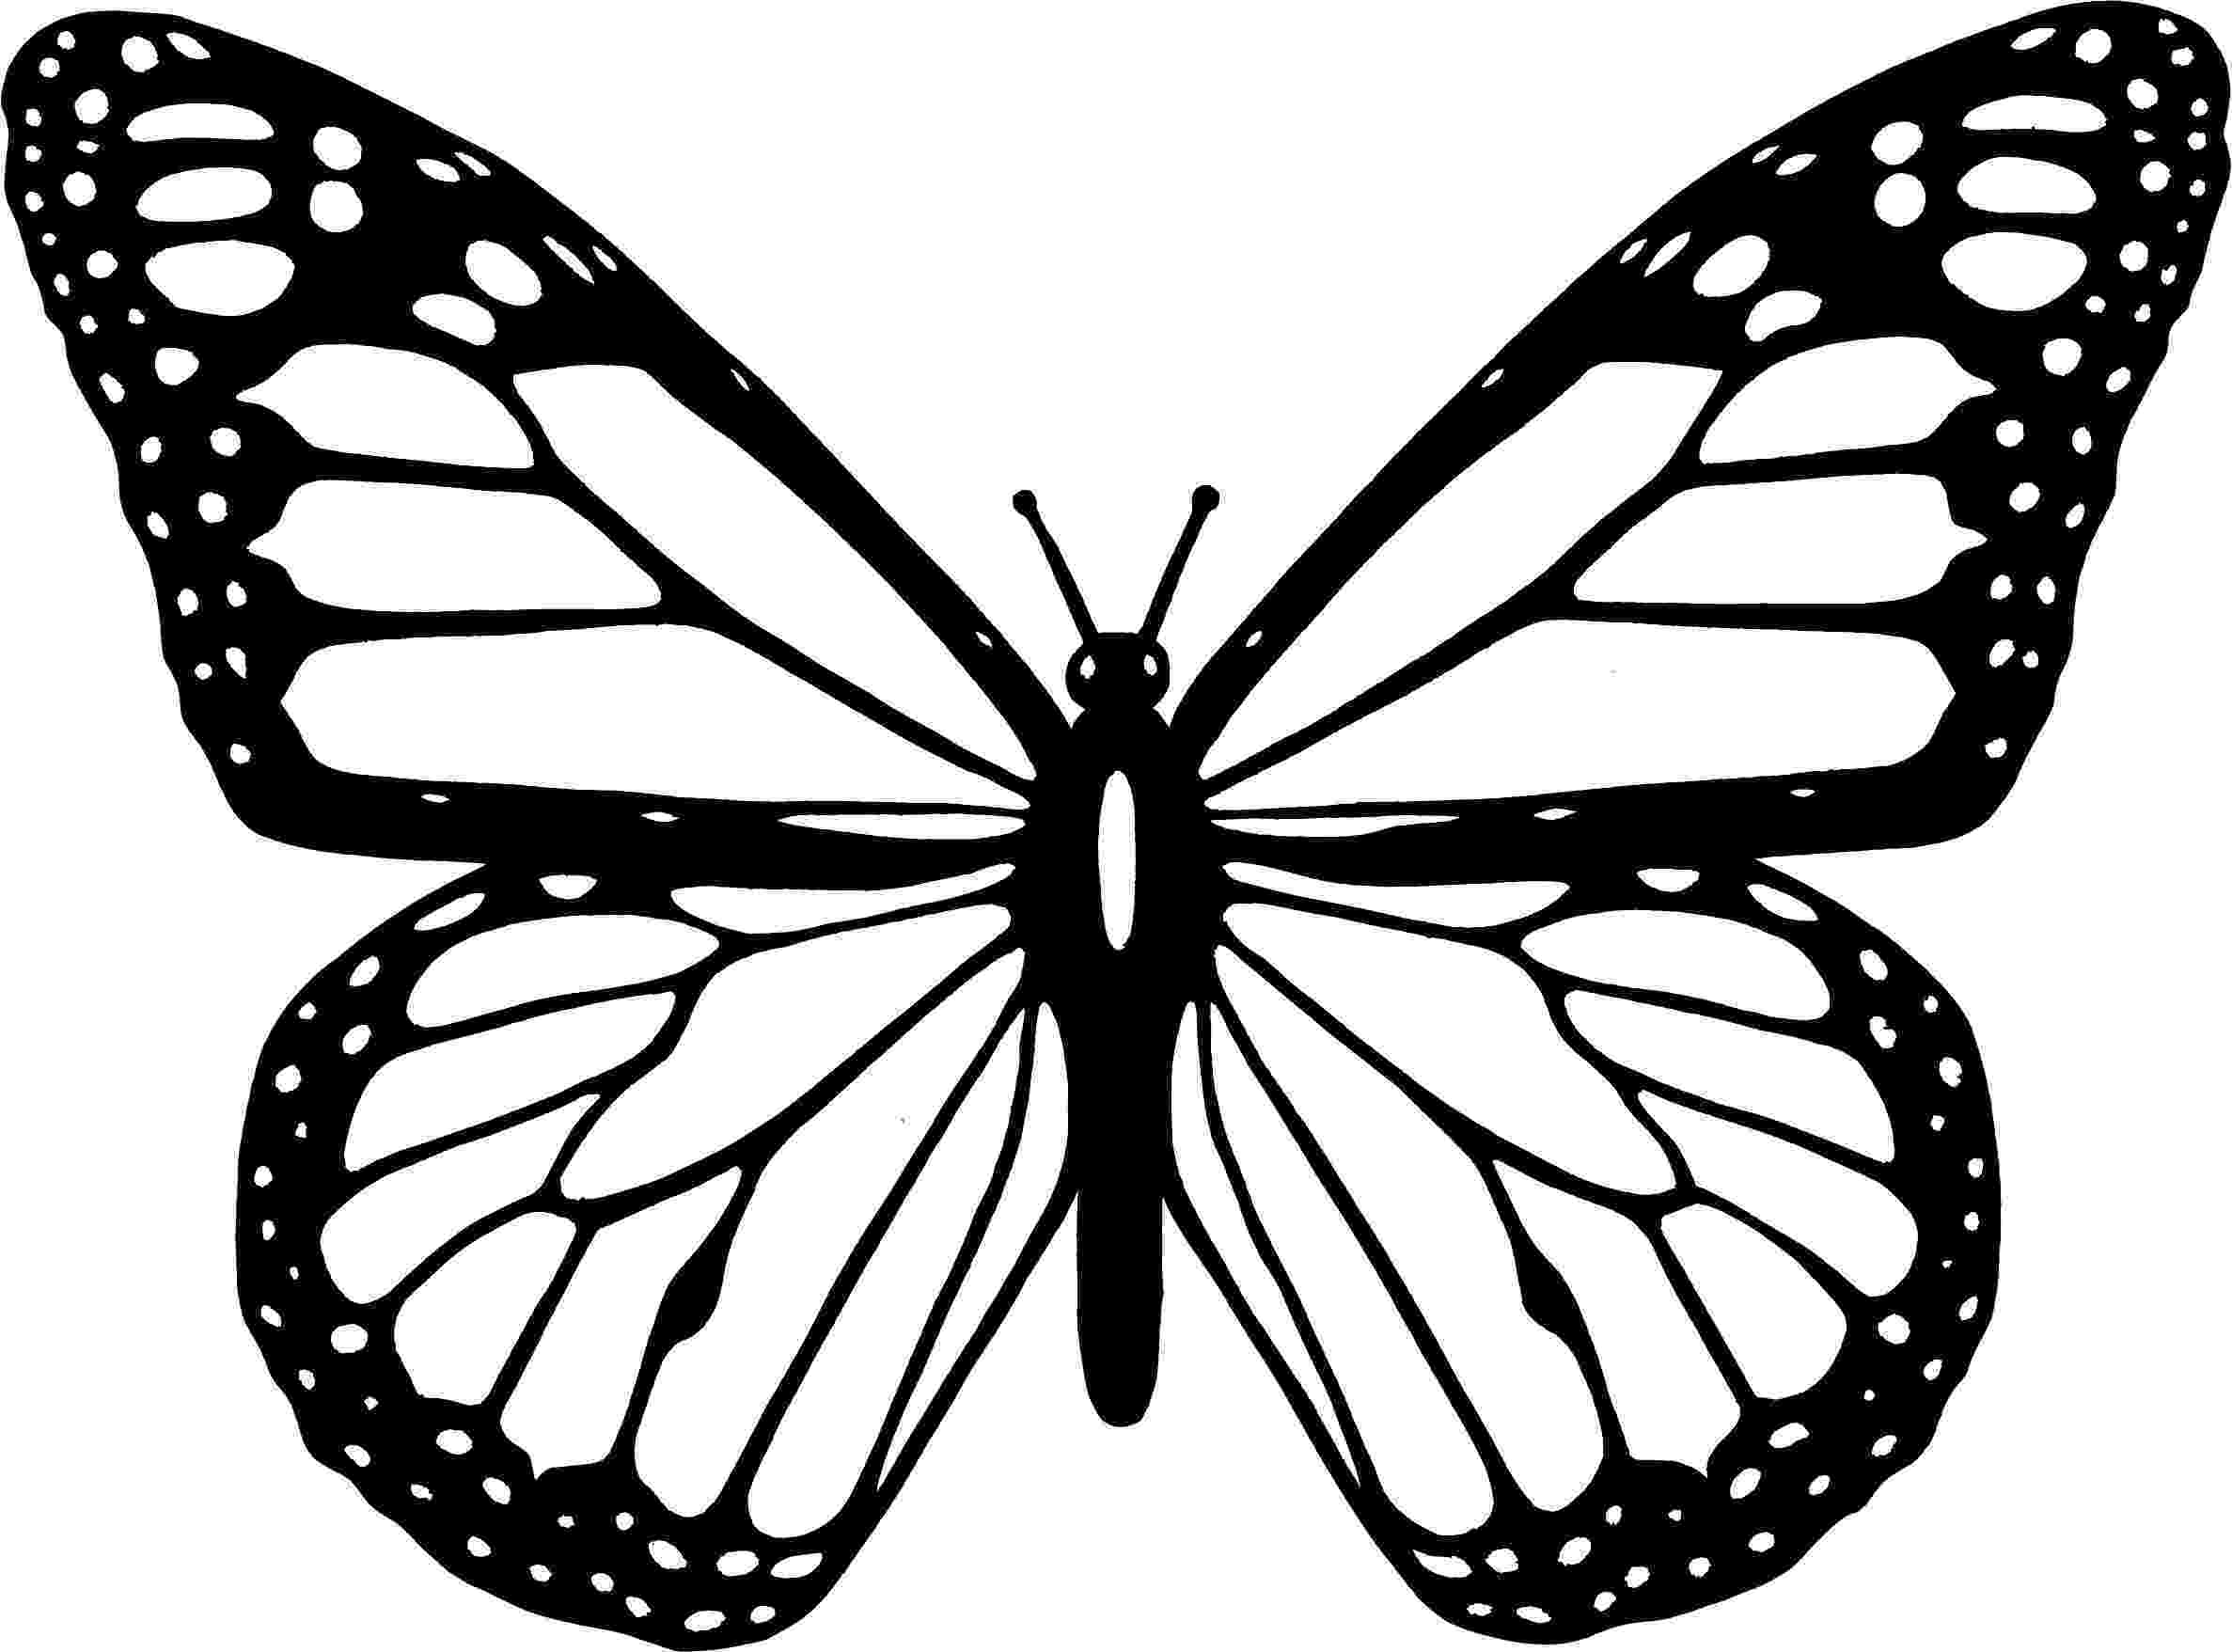 monarch butterfly coloring page butterfly coloring pages page monarch butterfly coloring